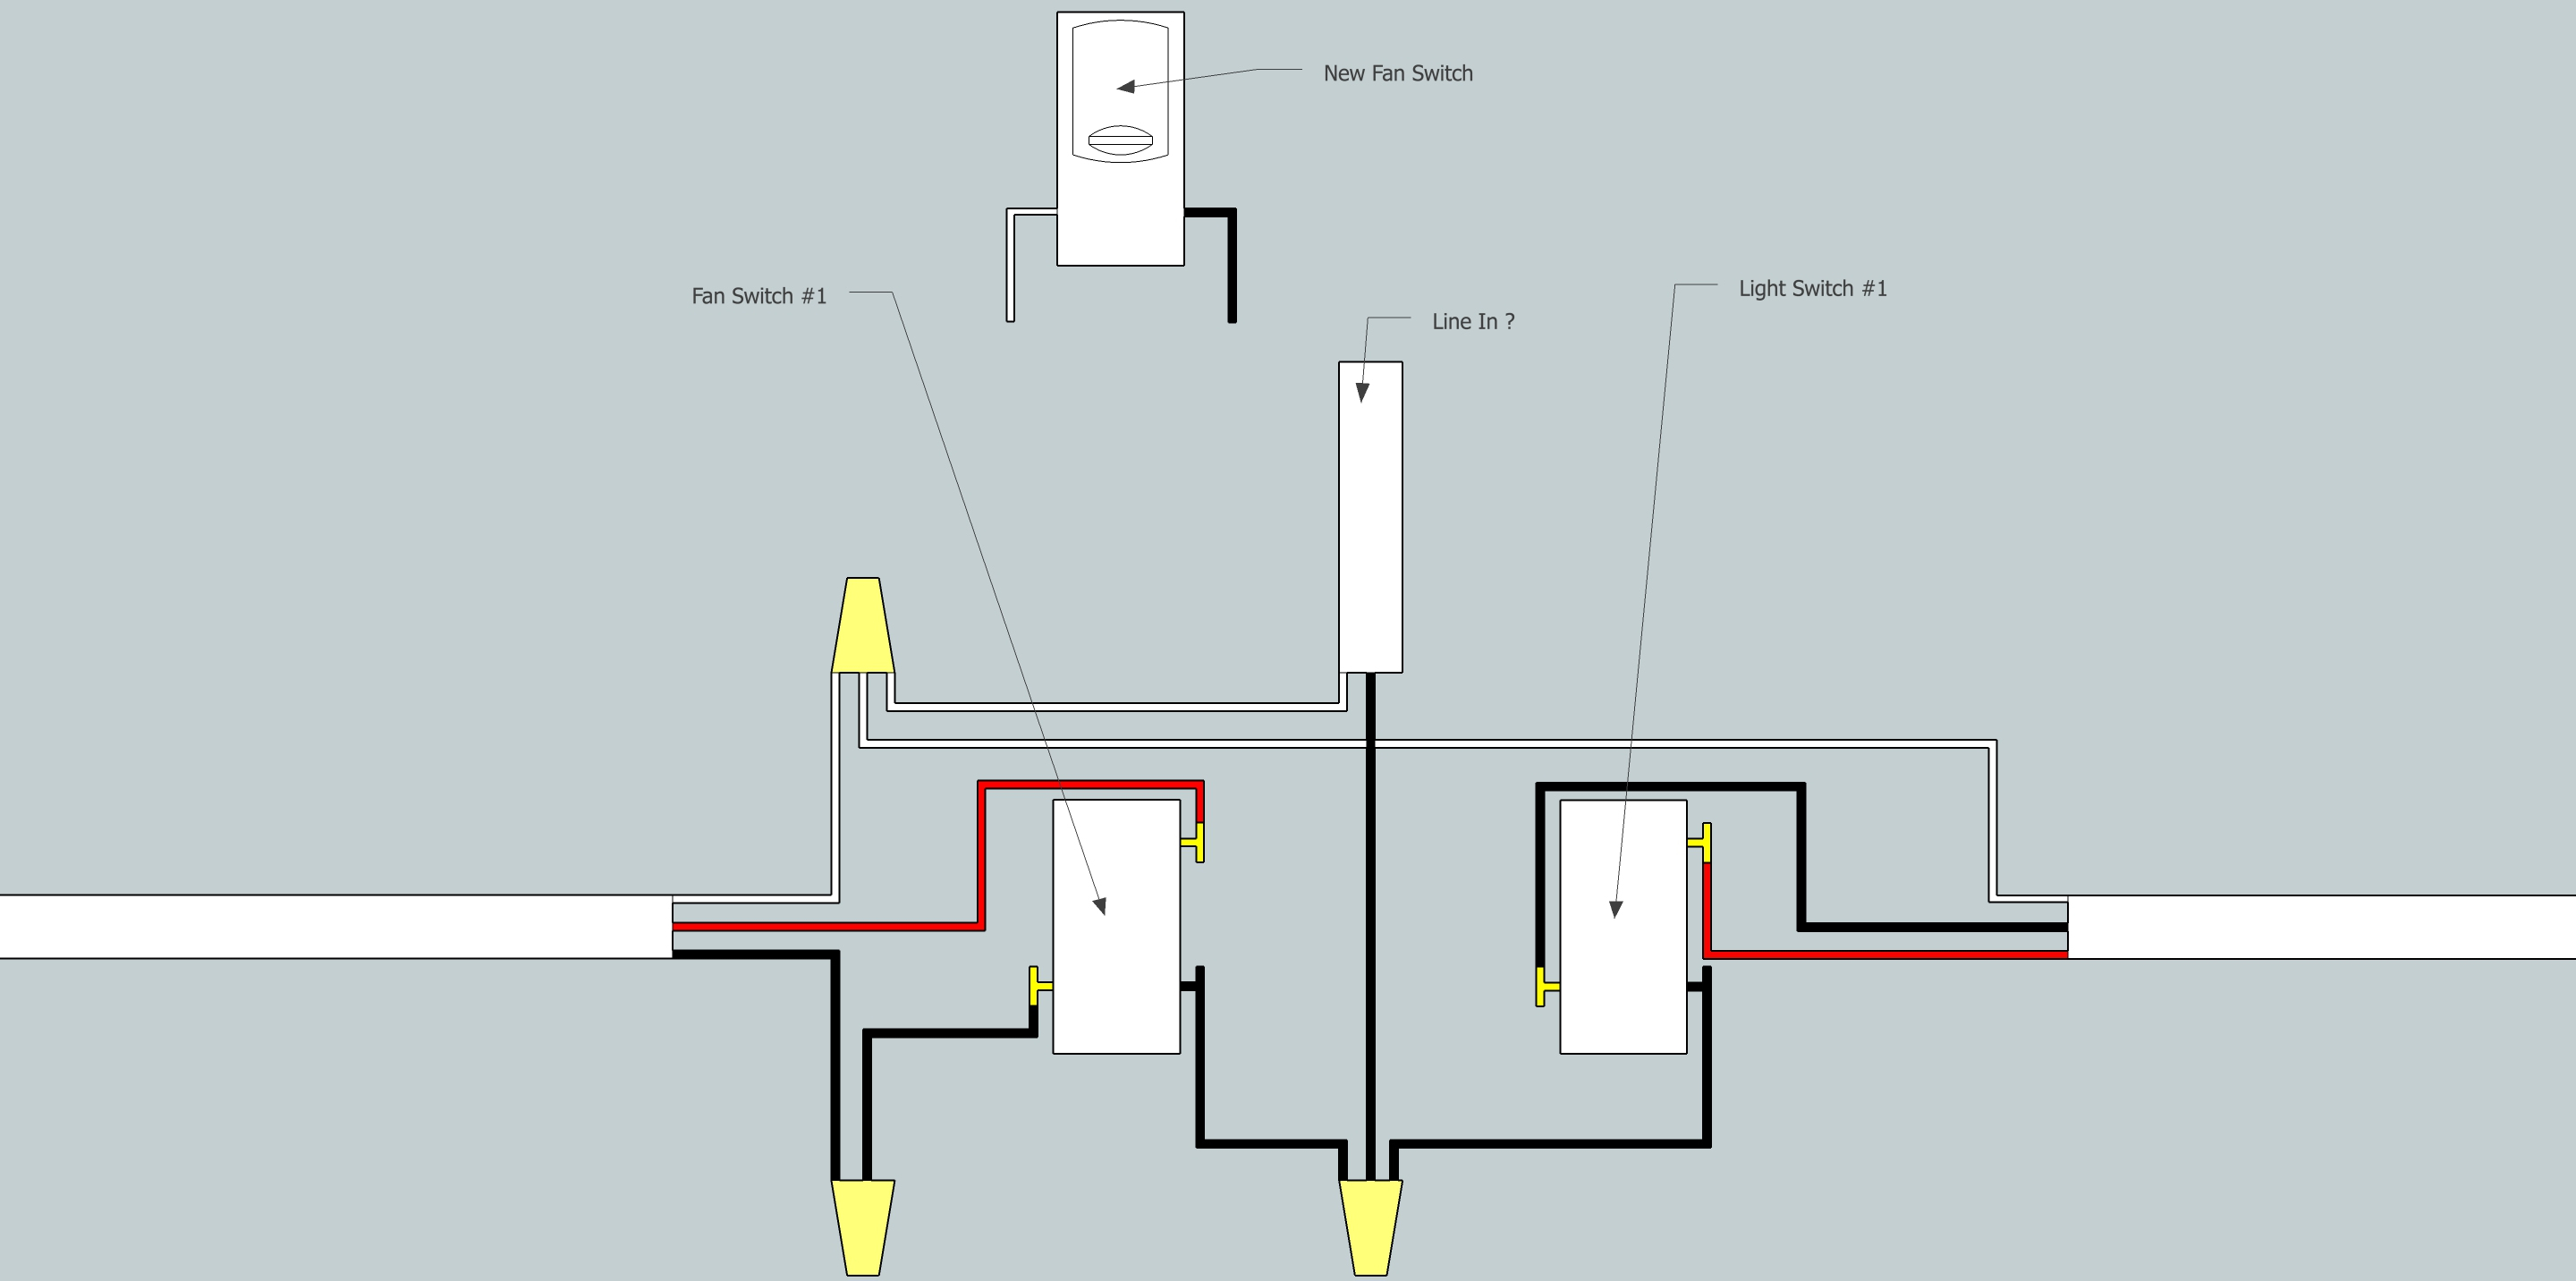 Electrical - Need Help Adding Fan To Existing 3-Way Switch Setup - 3Way Switch Wiring Diagram